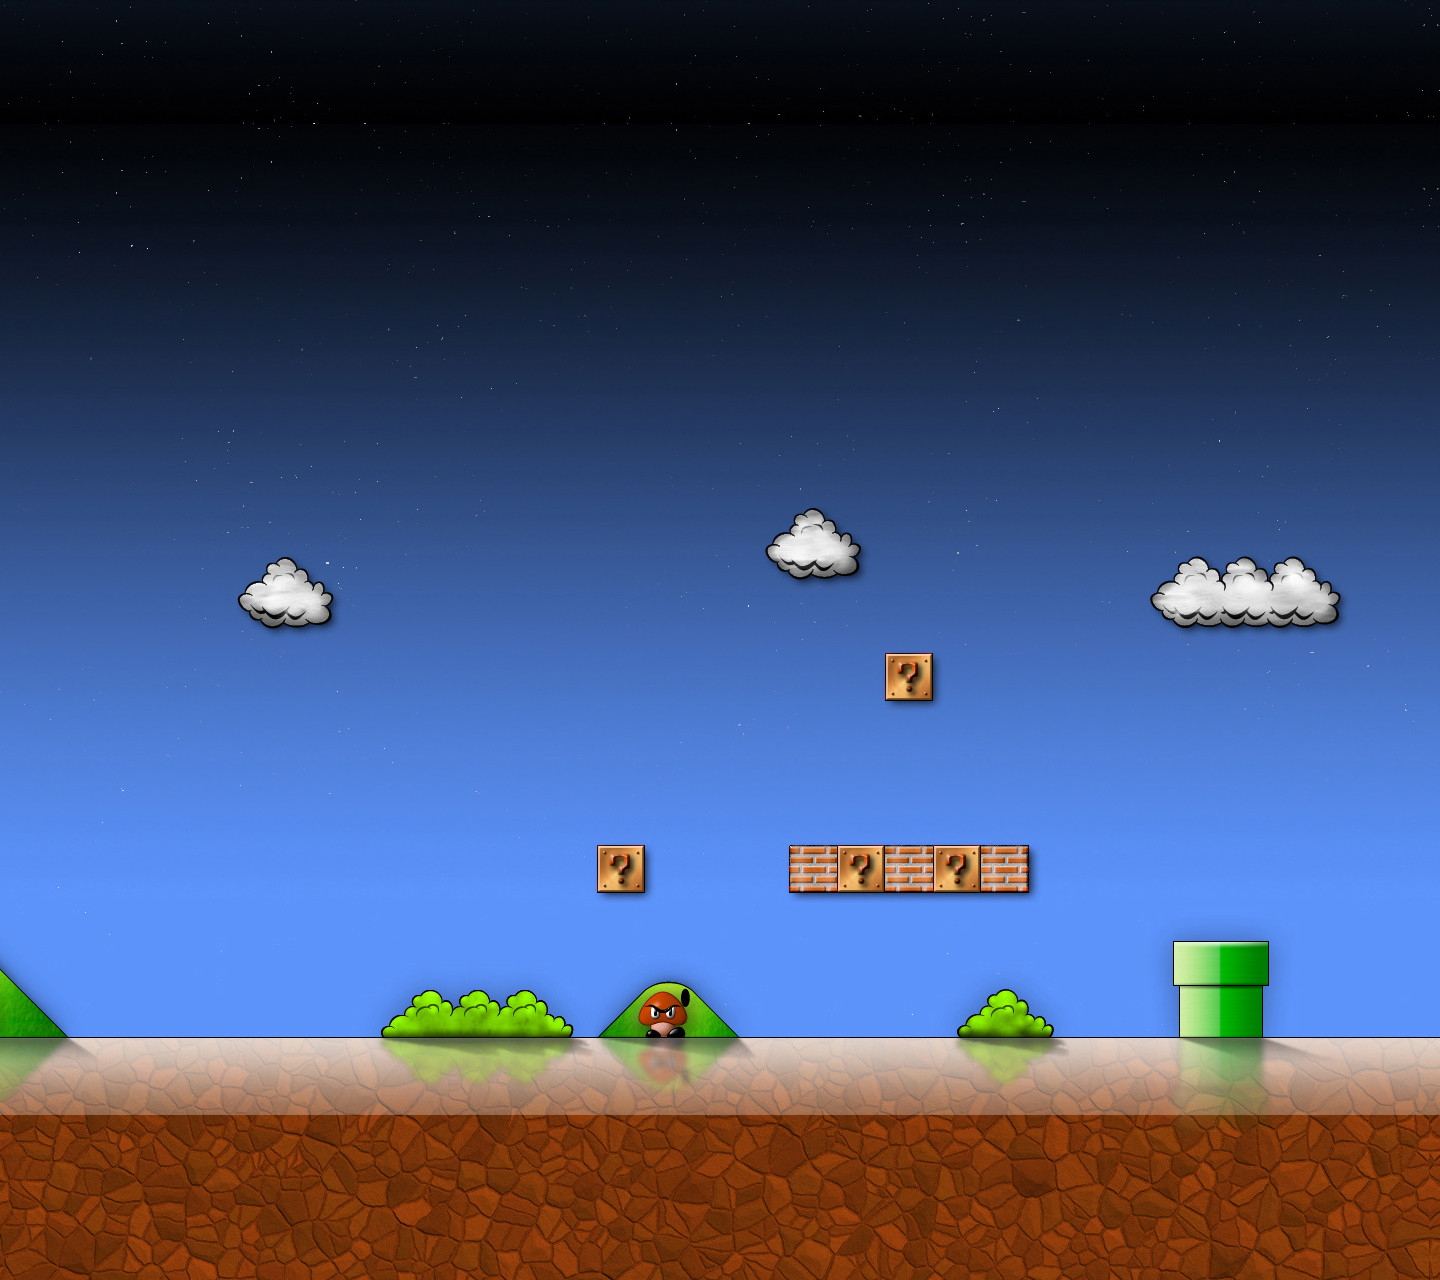 [Download] 19 Super Mario Bros High-Res wallpapers by Neff Starr